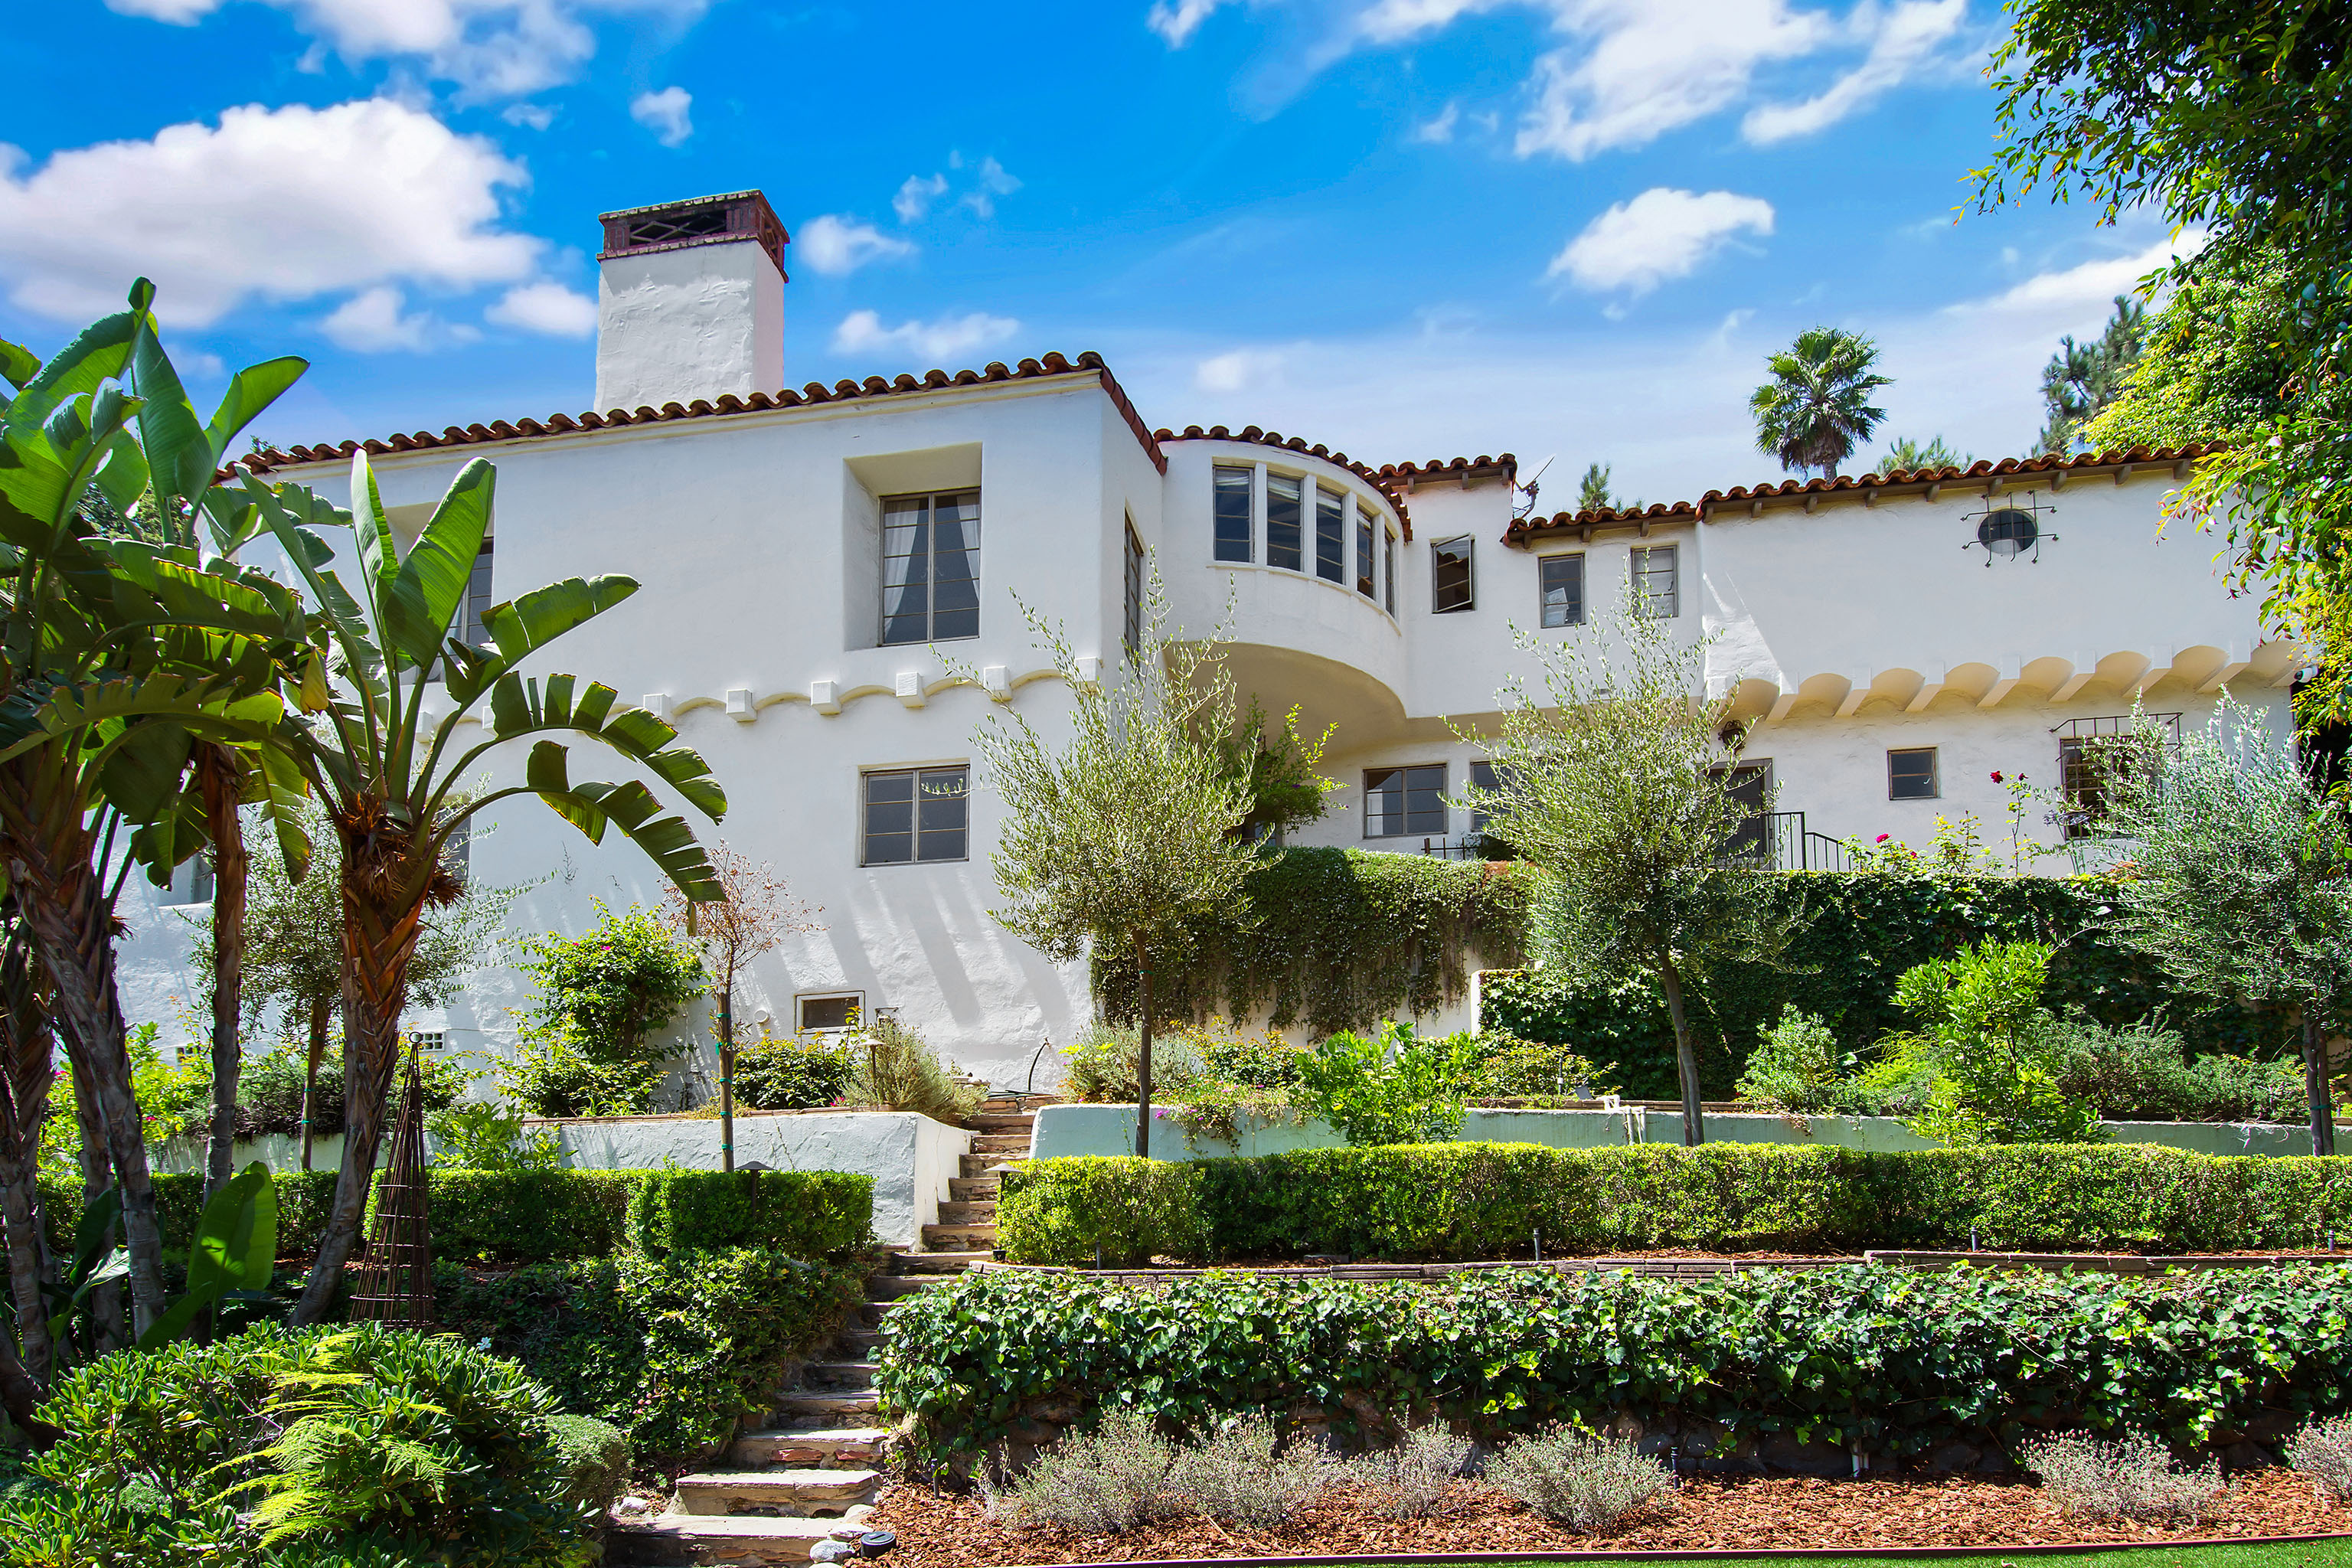 Footwear mogul Jon Buscemi is looking to flip his picturesque Los Angeles home with a celebrity past for close to $3 million.